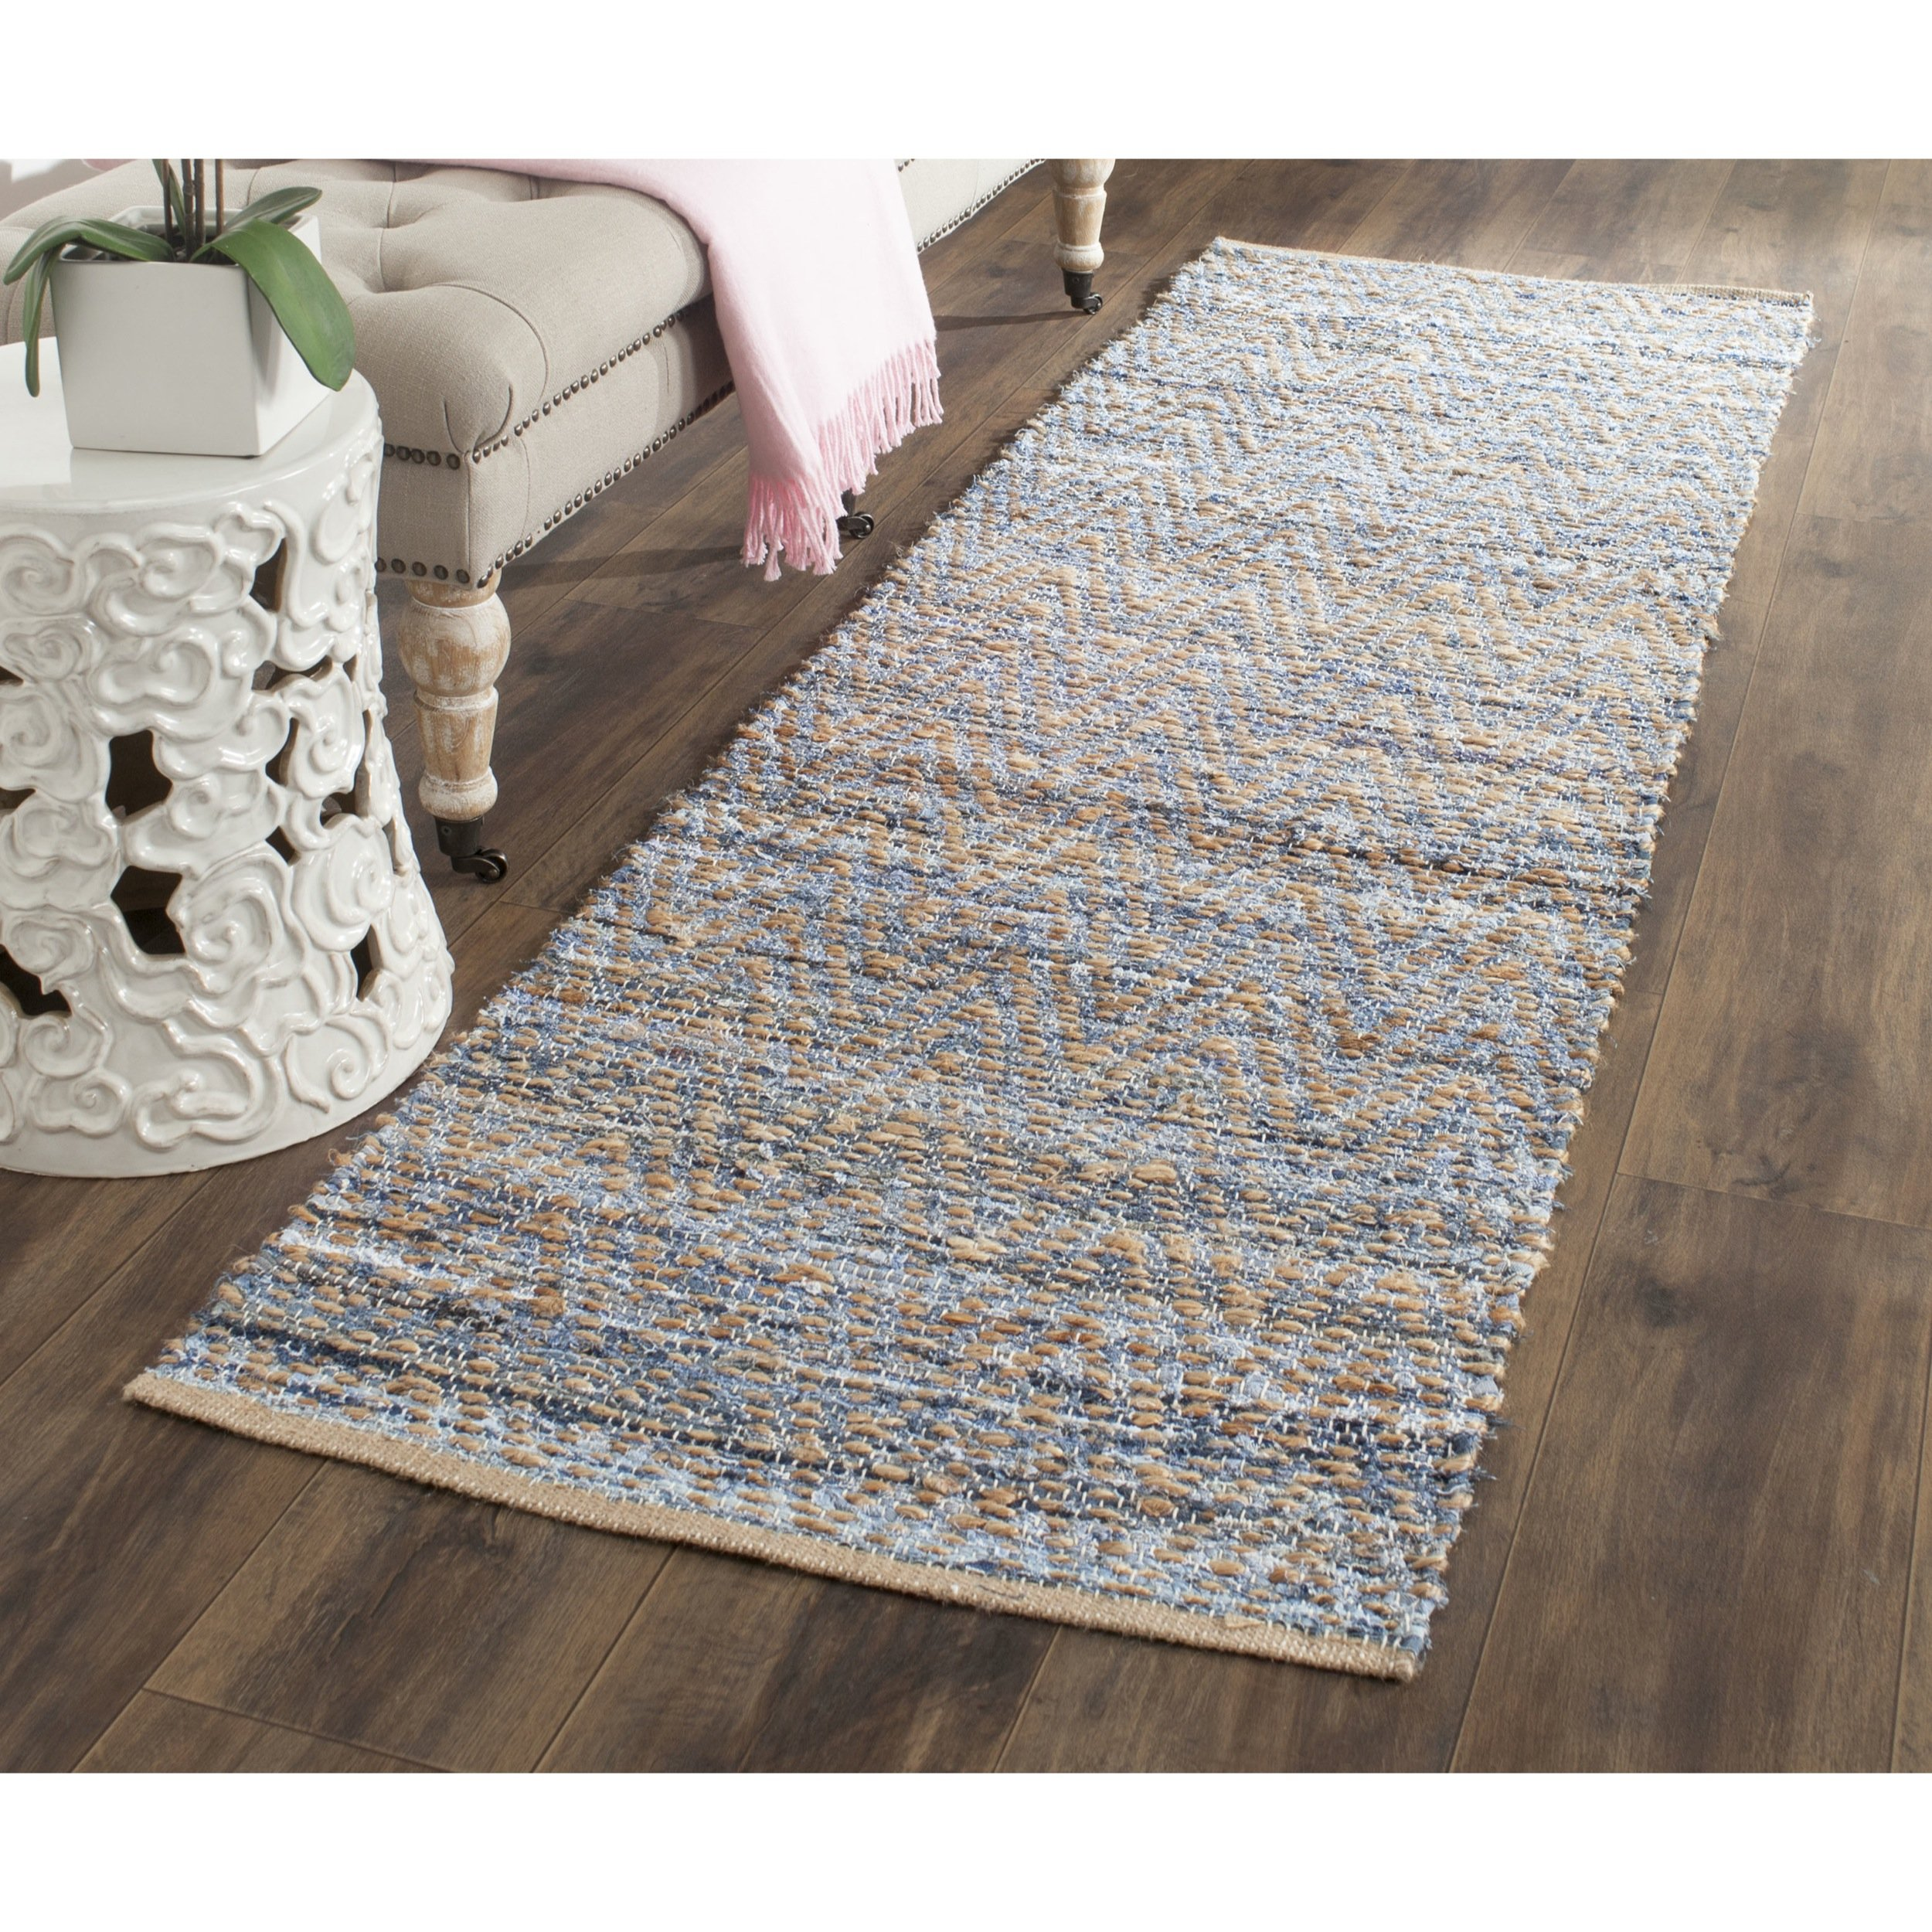 Safavieh Cape Cod Collection CAP350A Hand Woven Flatweave Chevron Natural and Blue Jute Runner (2'3'' x 6')